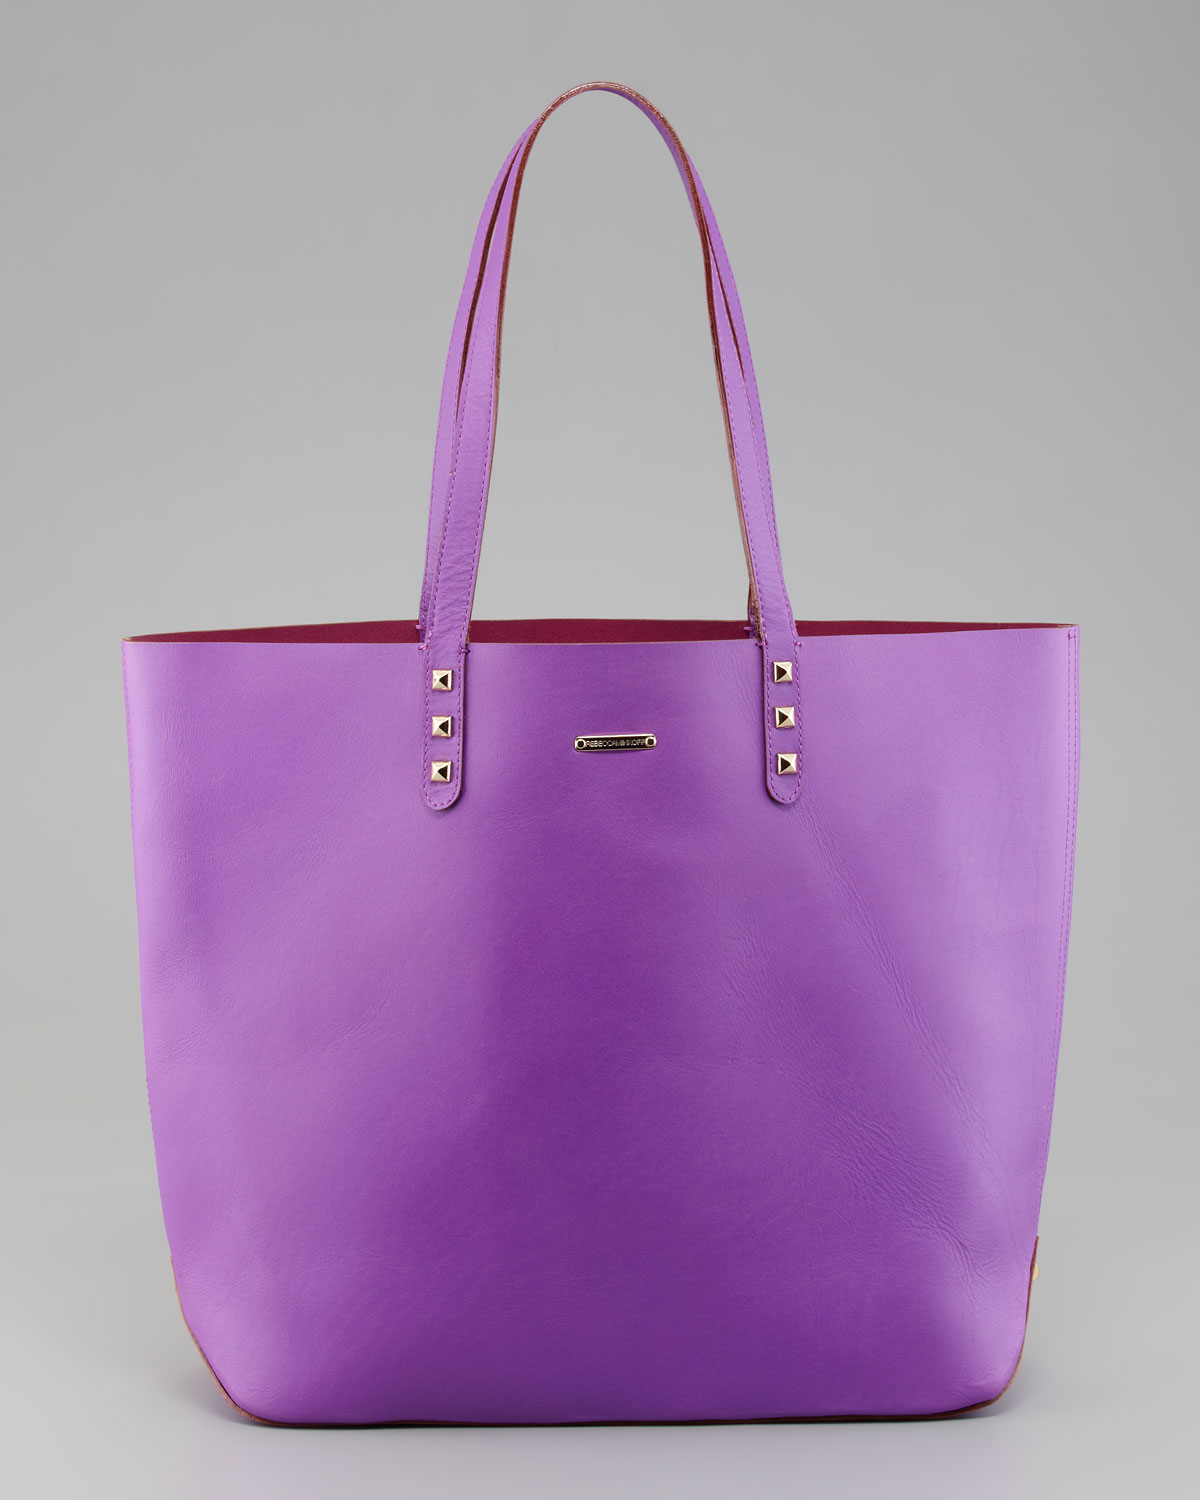 Excellent Lyst - Rebecca Minkoff Dylan Tote Bag in Purple DU89